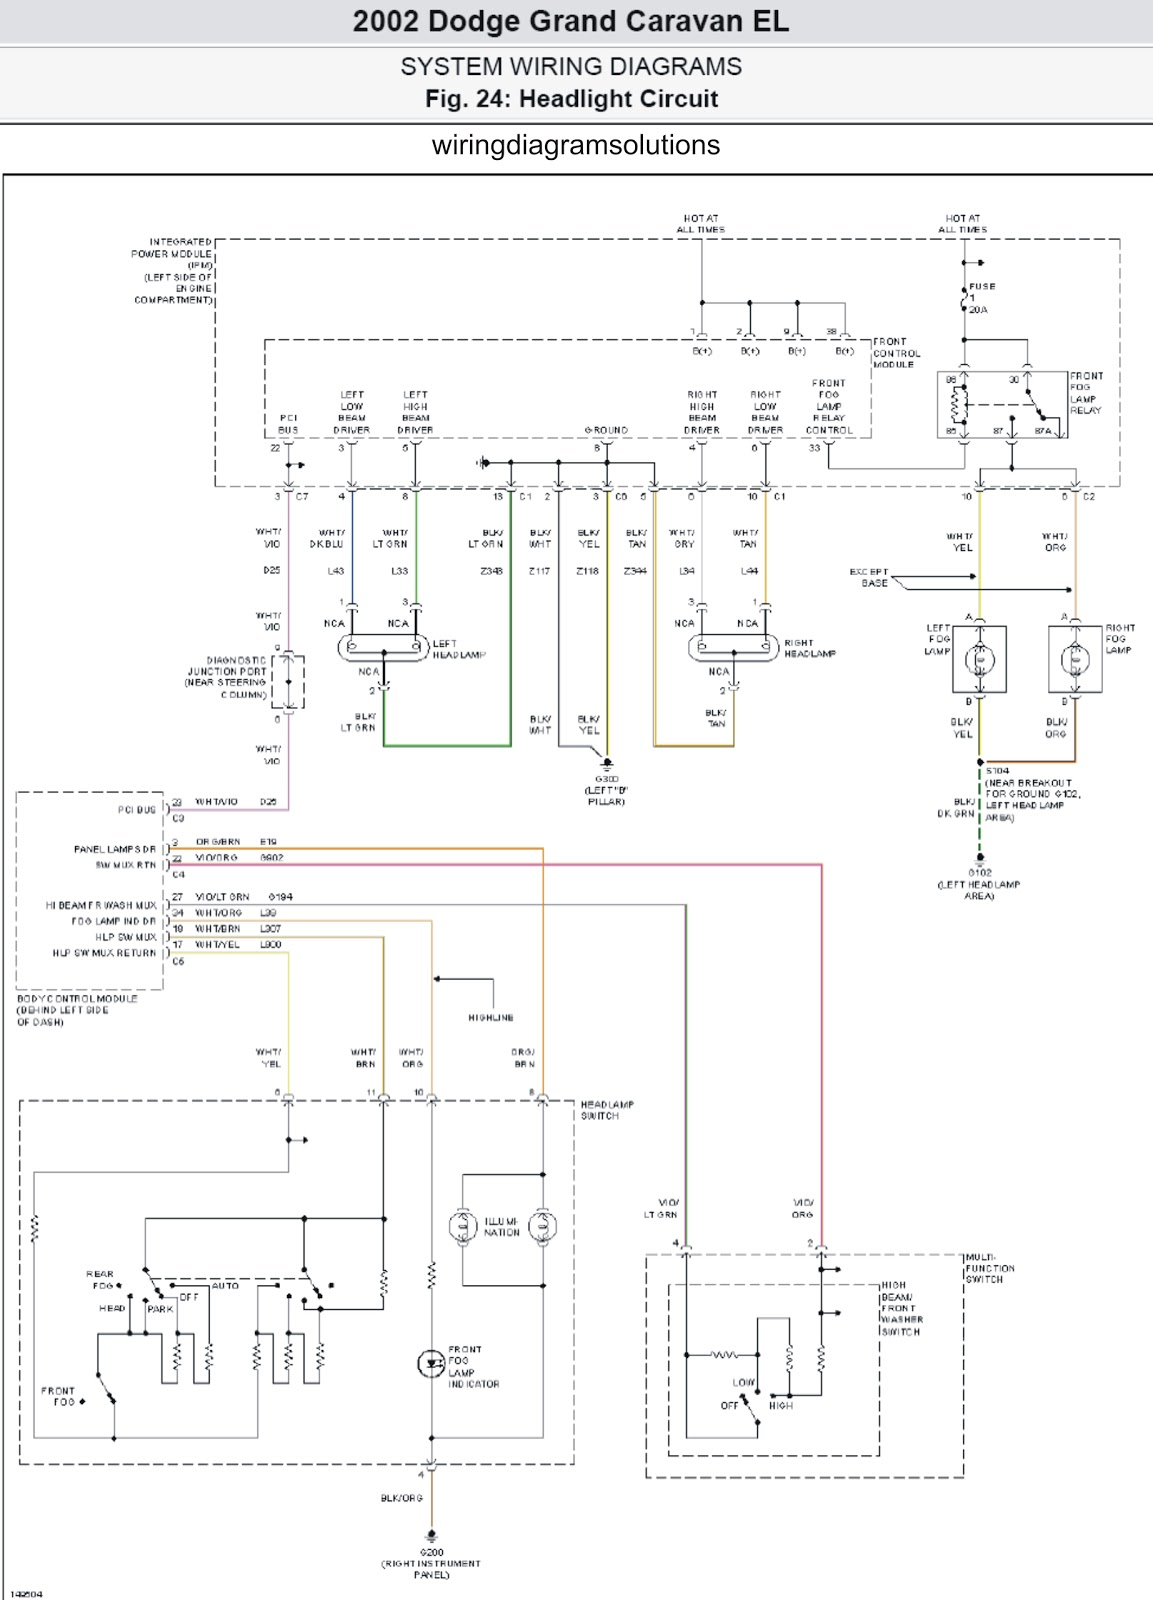 dodge grand caravan wiring diagram - video search engine ... 97 dodge caravan wiring diagram